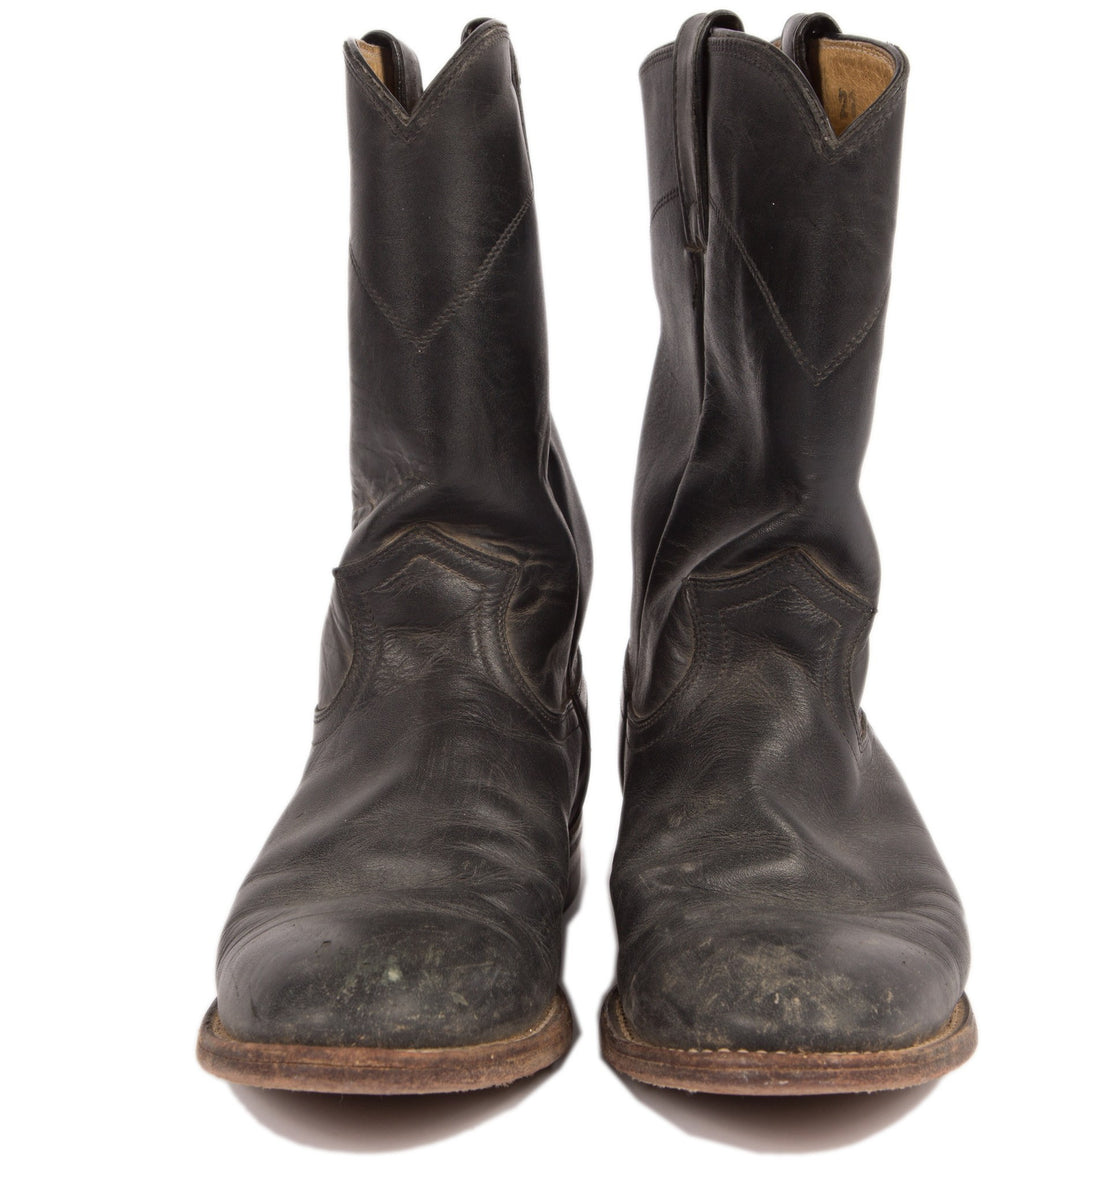 Vintage Black Leather Justin Boots, 7 1/2